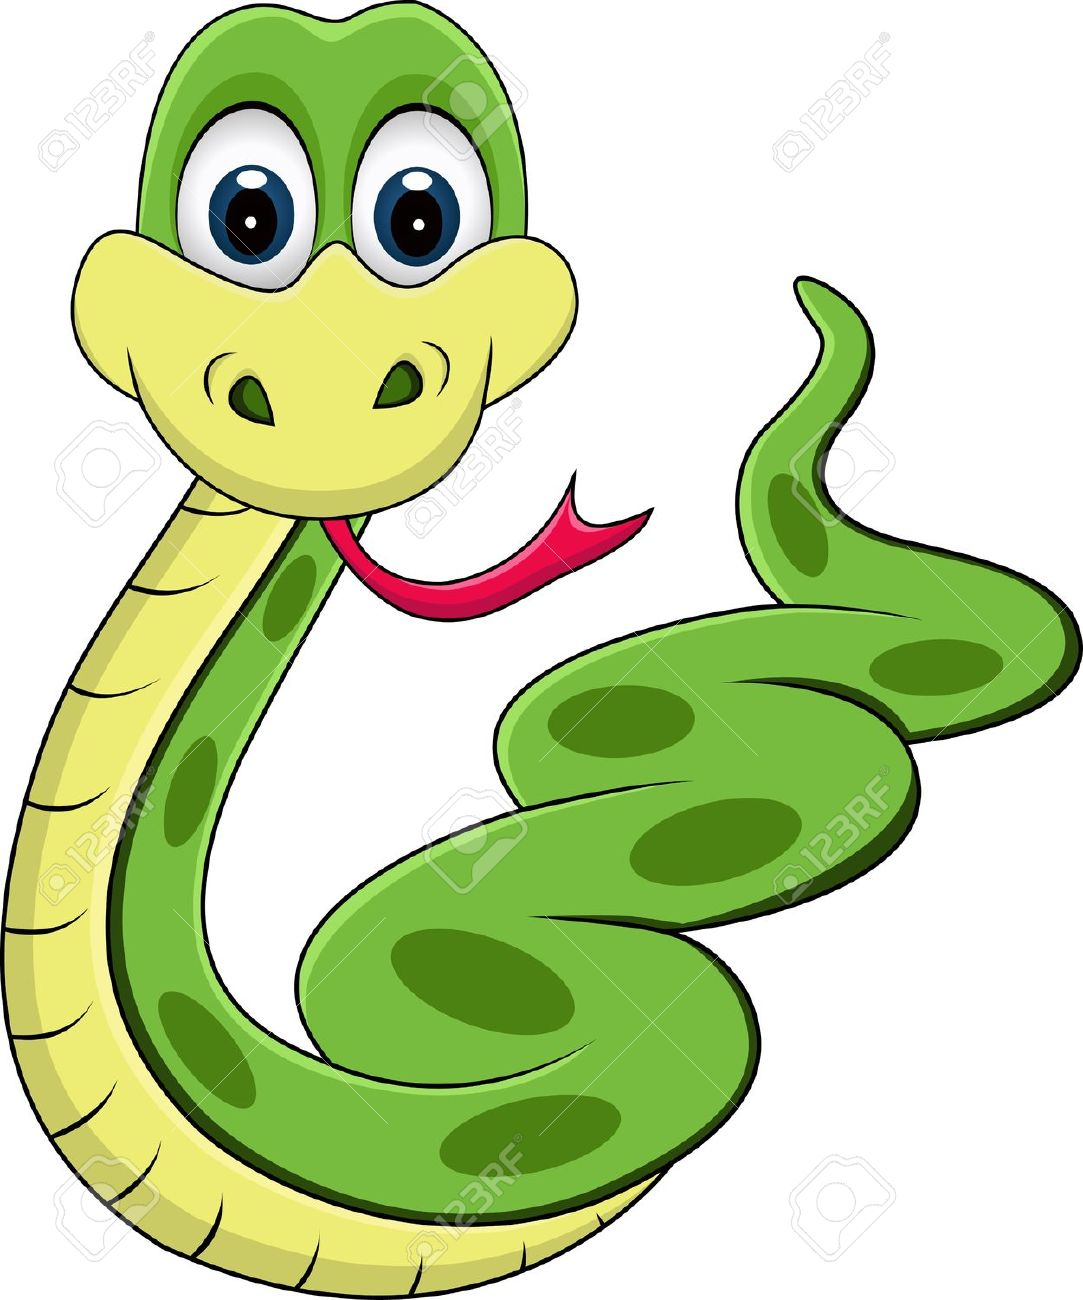 Smooth Green Snake clipart #4, Download drawings